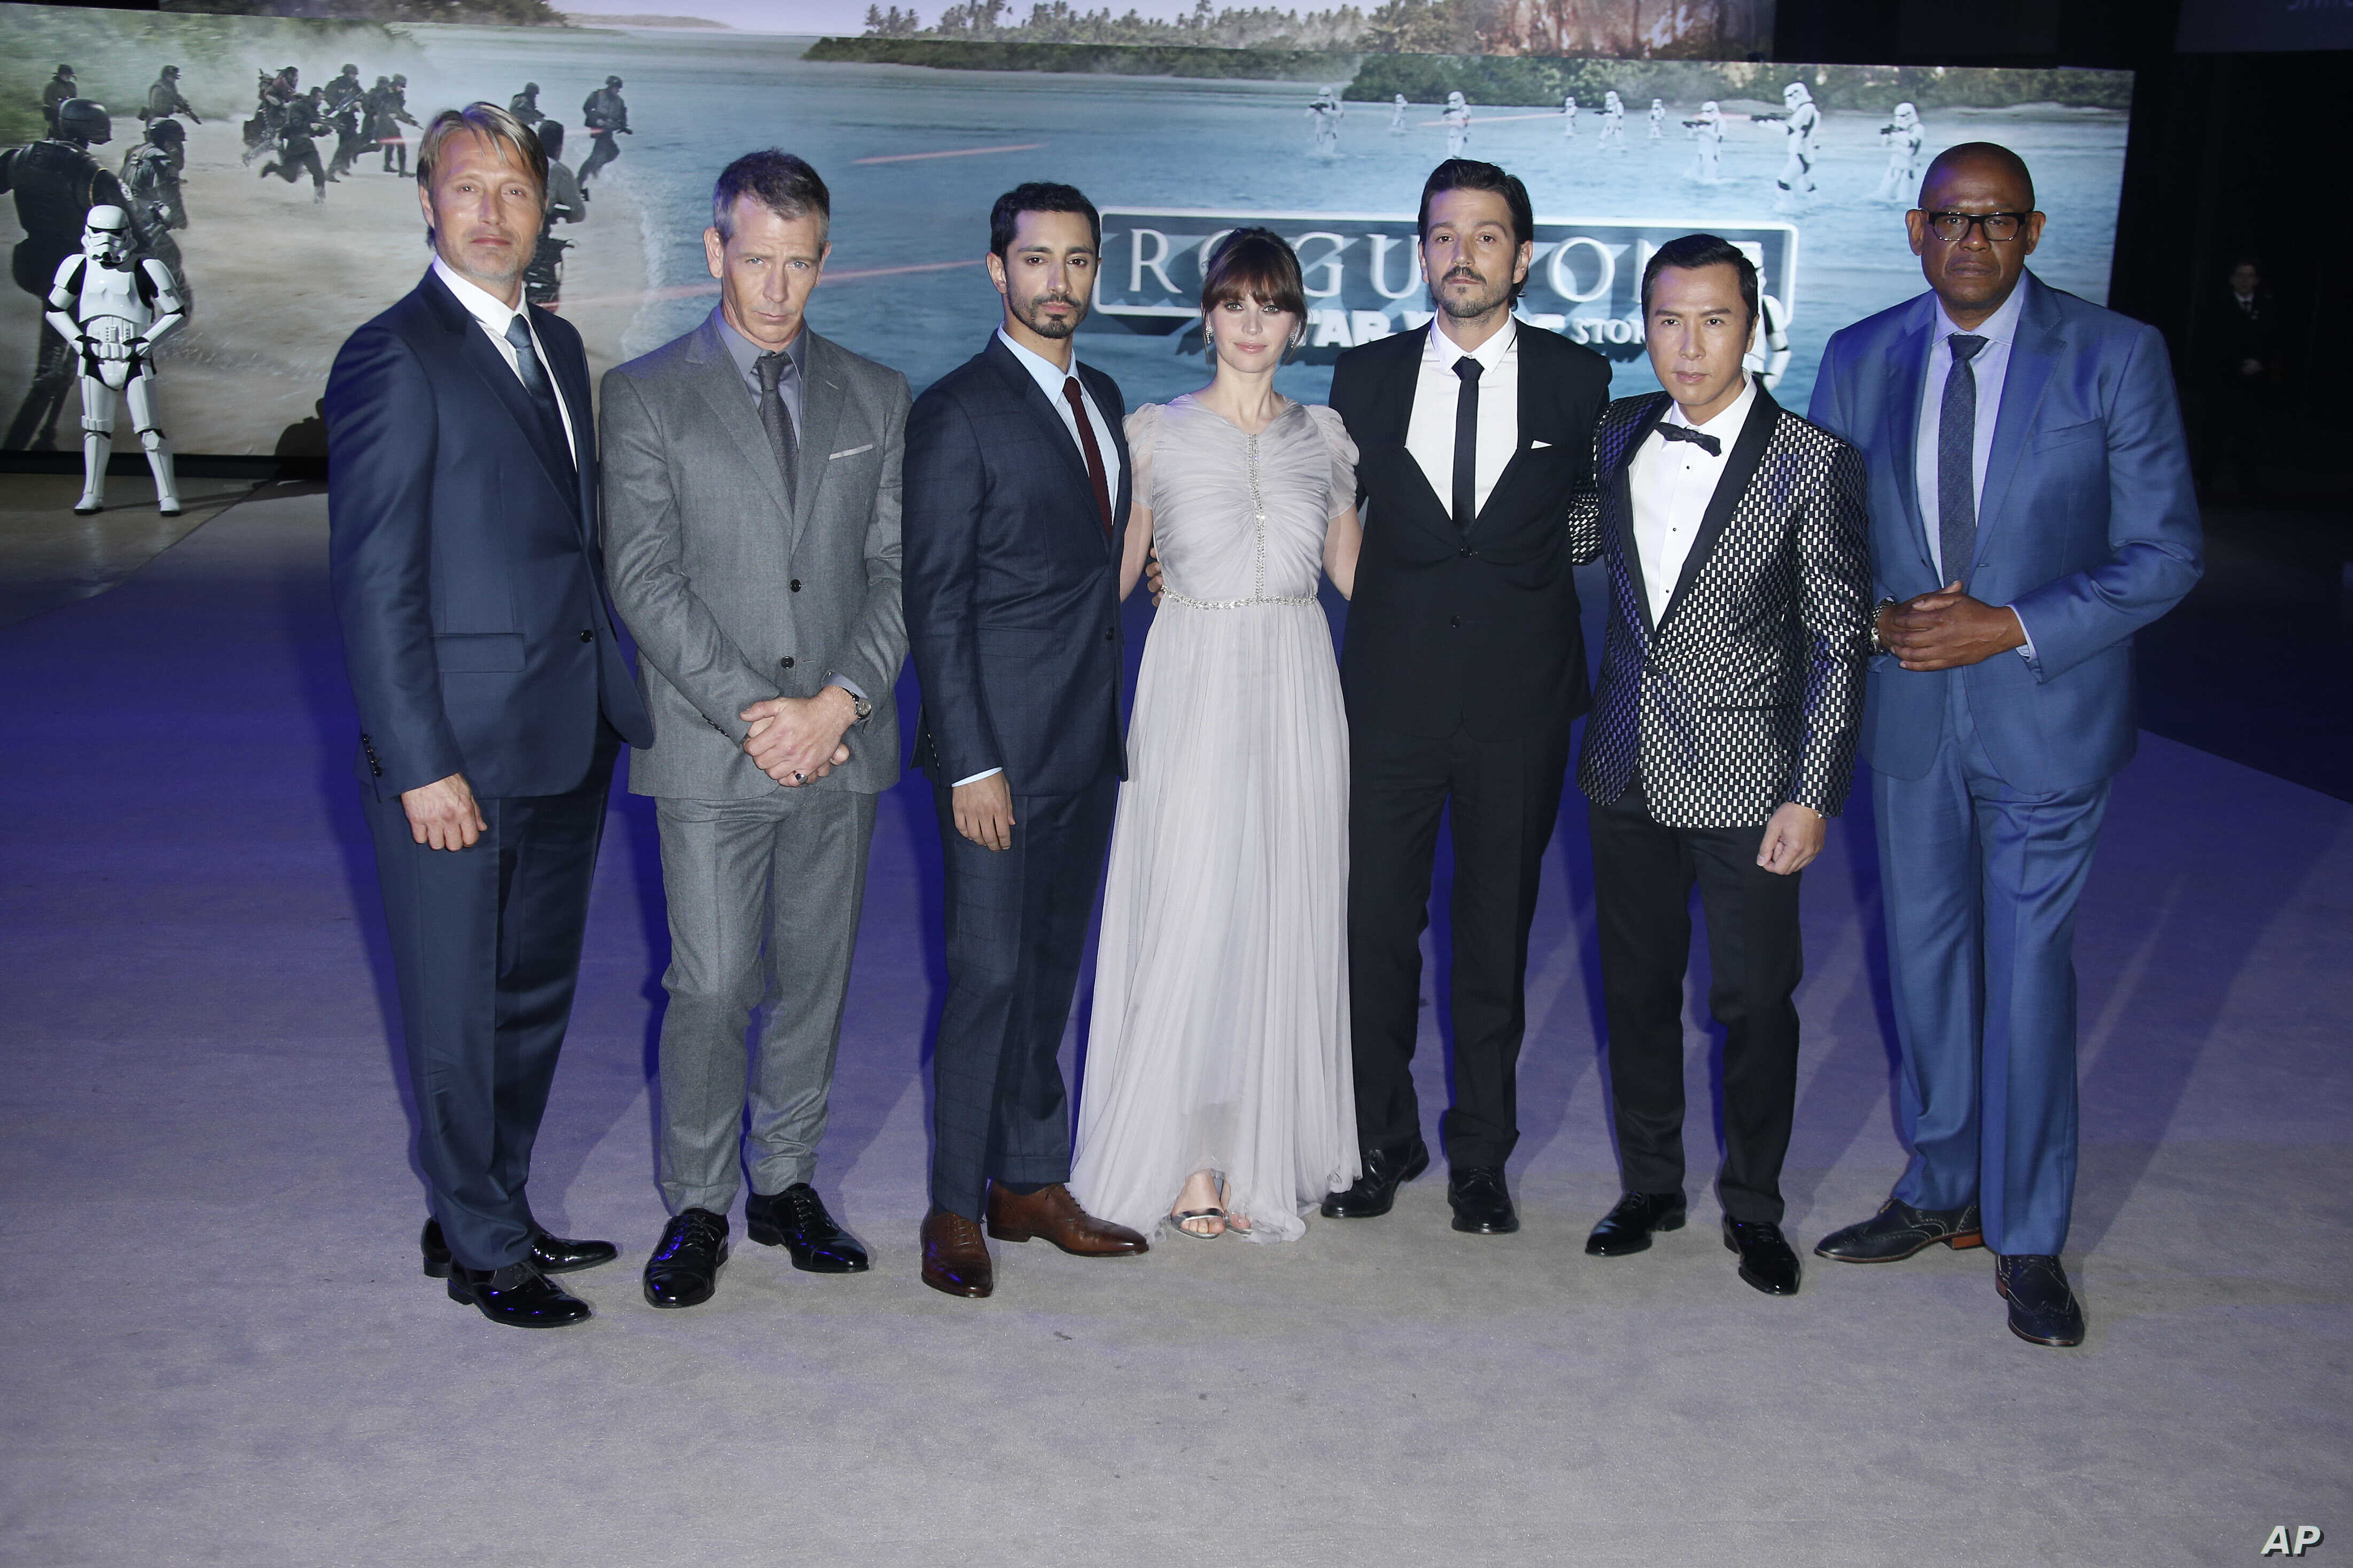 Actors from left, Mads Mikkelsen, Ben Mendelsohn, Riz Ahmed, Felicity Jones, Diego Luna, Donnie Yen and Forest Whitaker pose for photographers upon arrival at the Rogue One: A Star Wars premiere in London, Dec. 13, 2016.